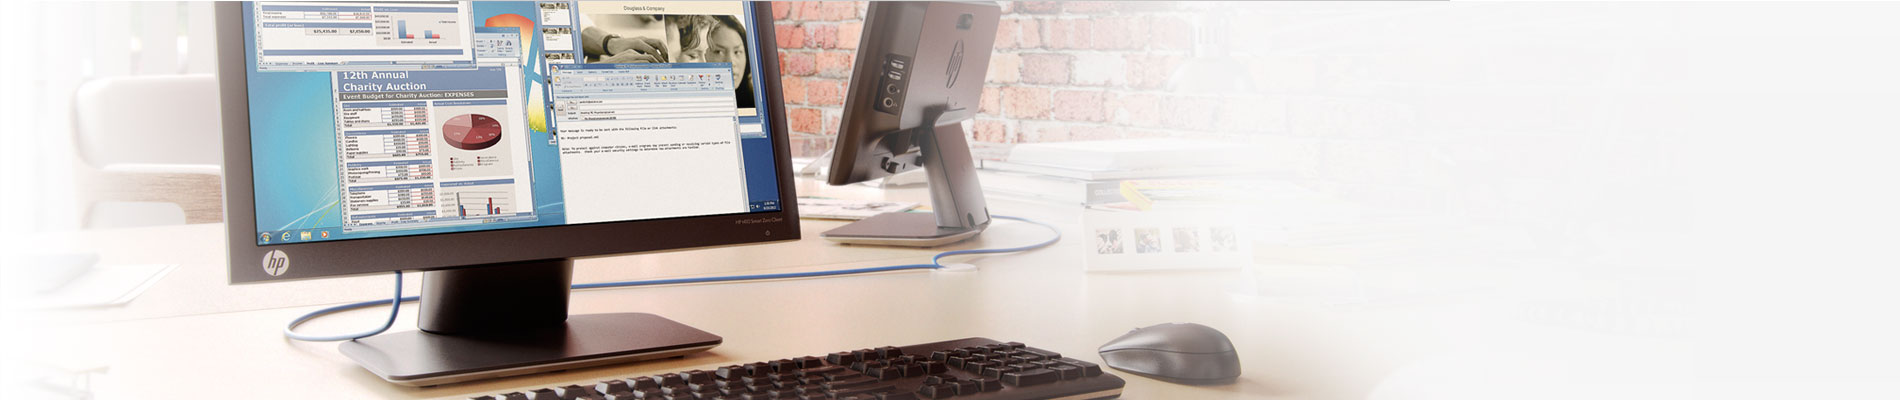 Thin Client Software, Downloads and Operating Systems | HP